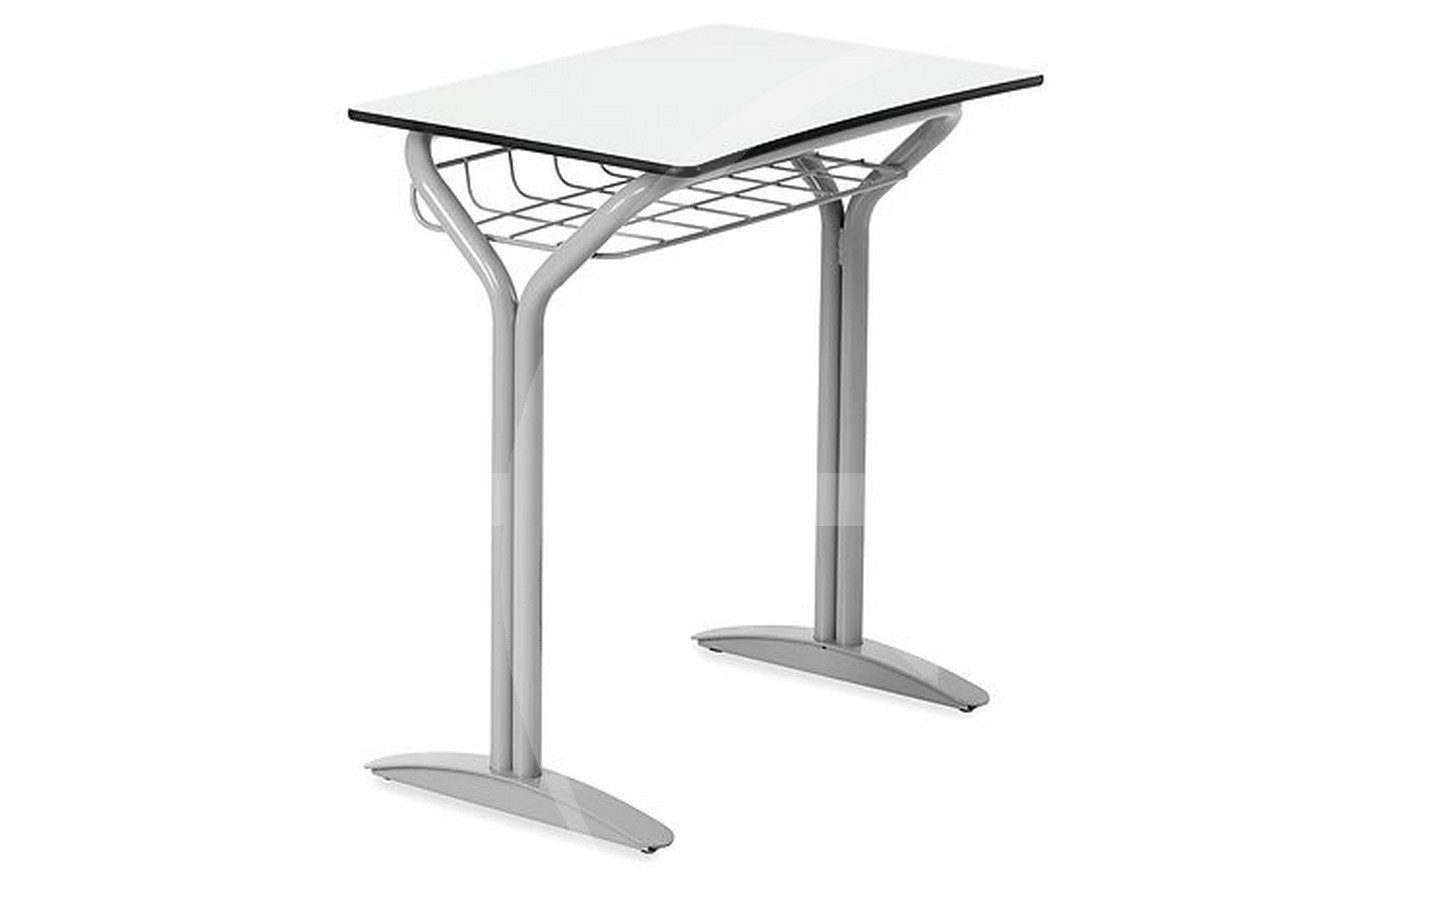 Single desks